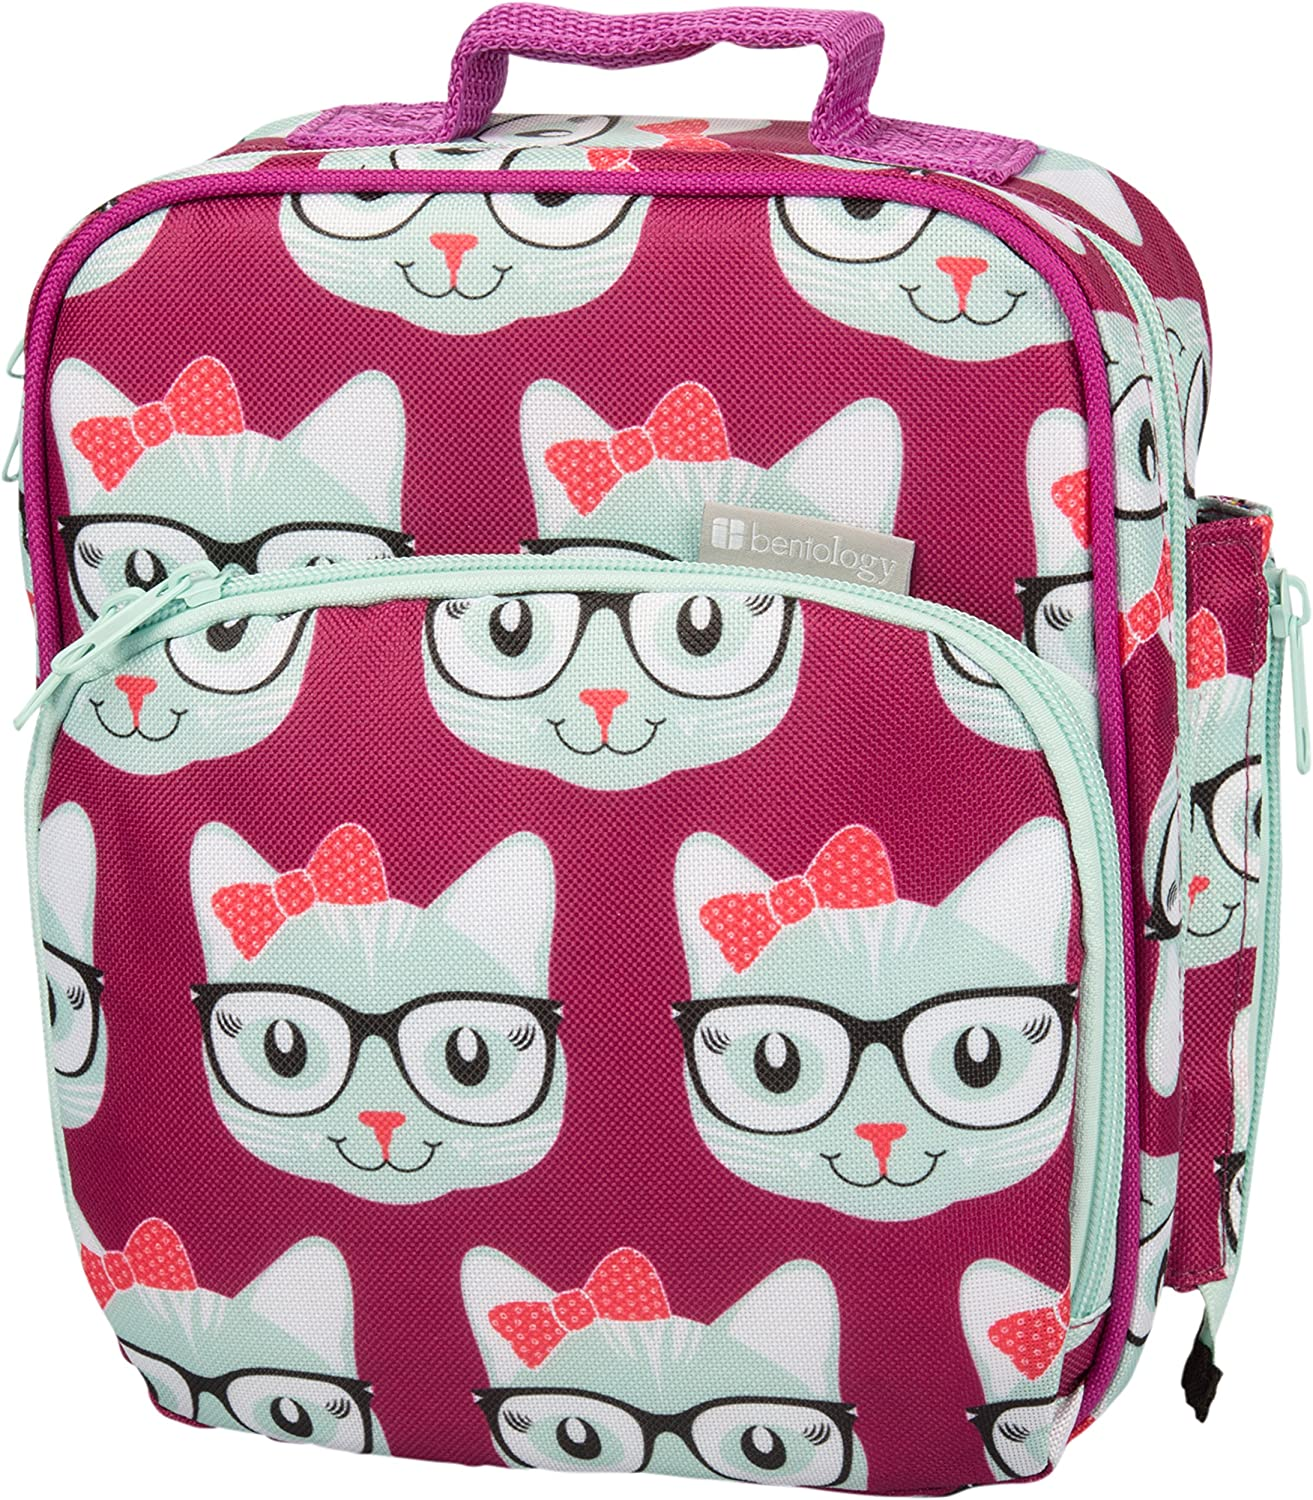 Bentology Lunch Box for Kids - Girls and Boys Insulated Lunchbox Bag Tote - Fits Bento Boxes